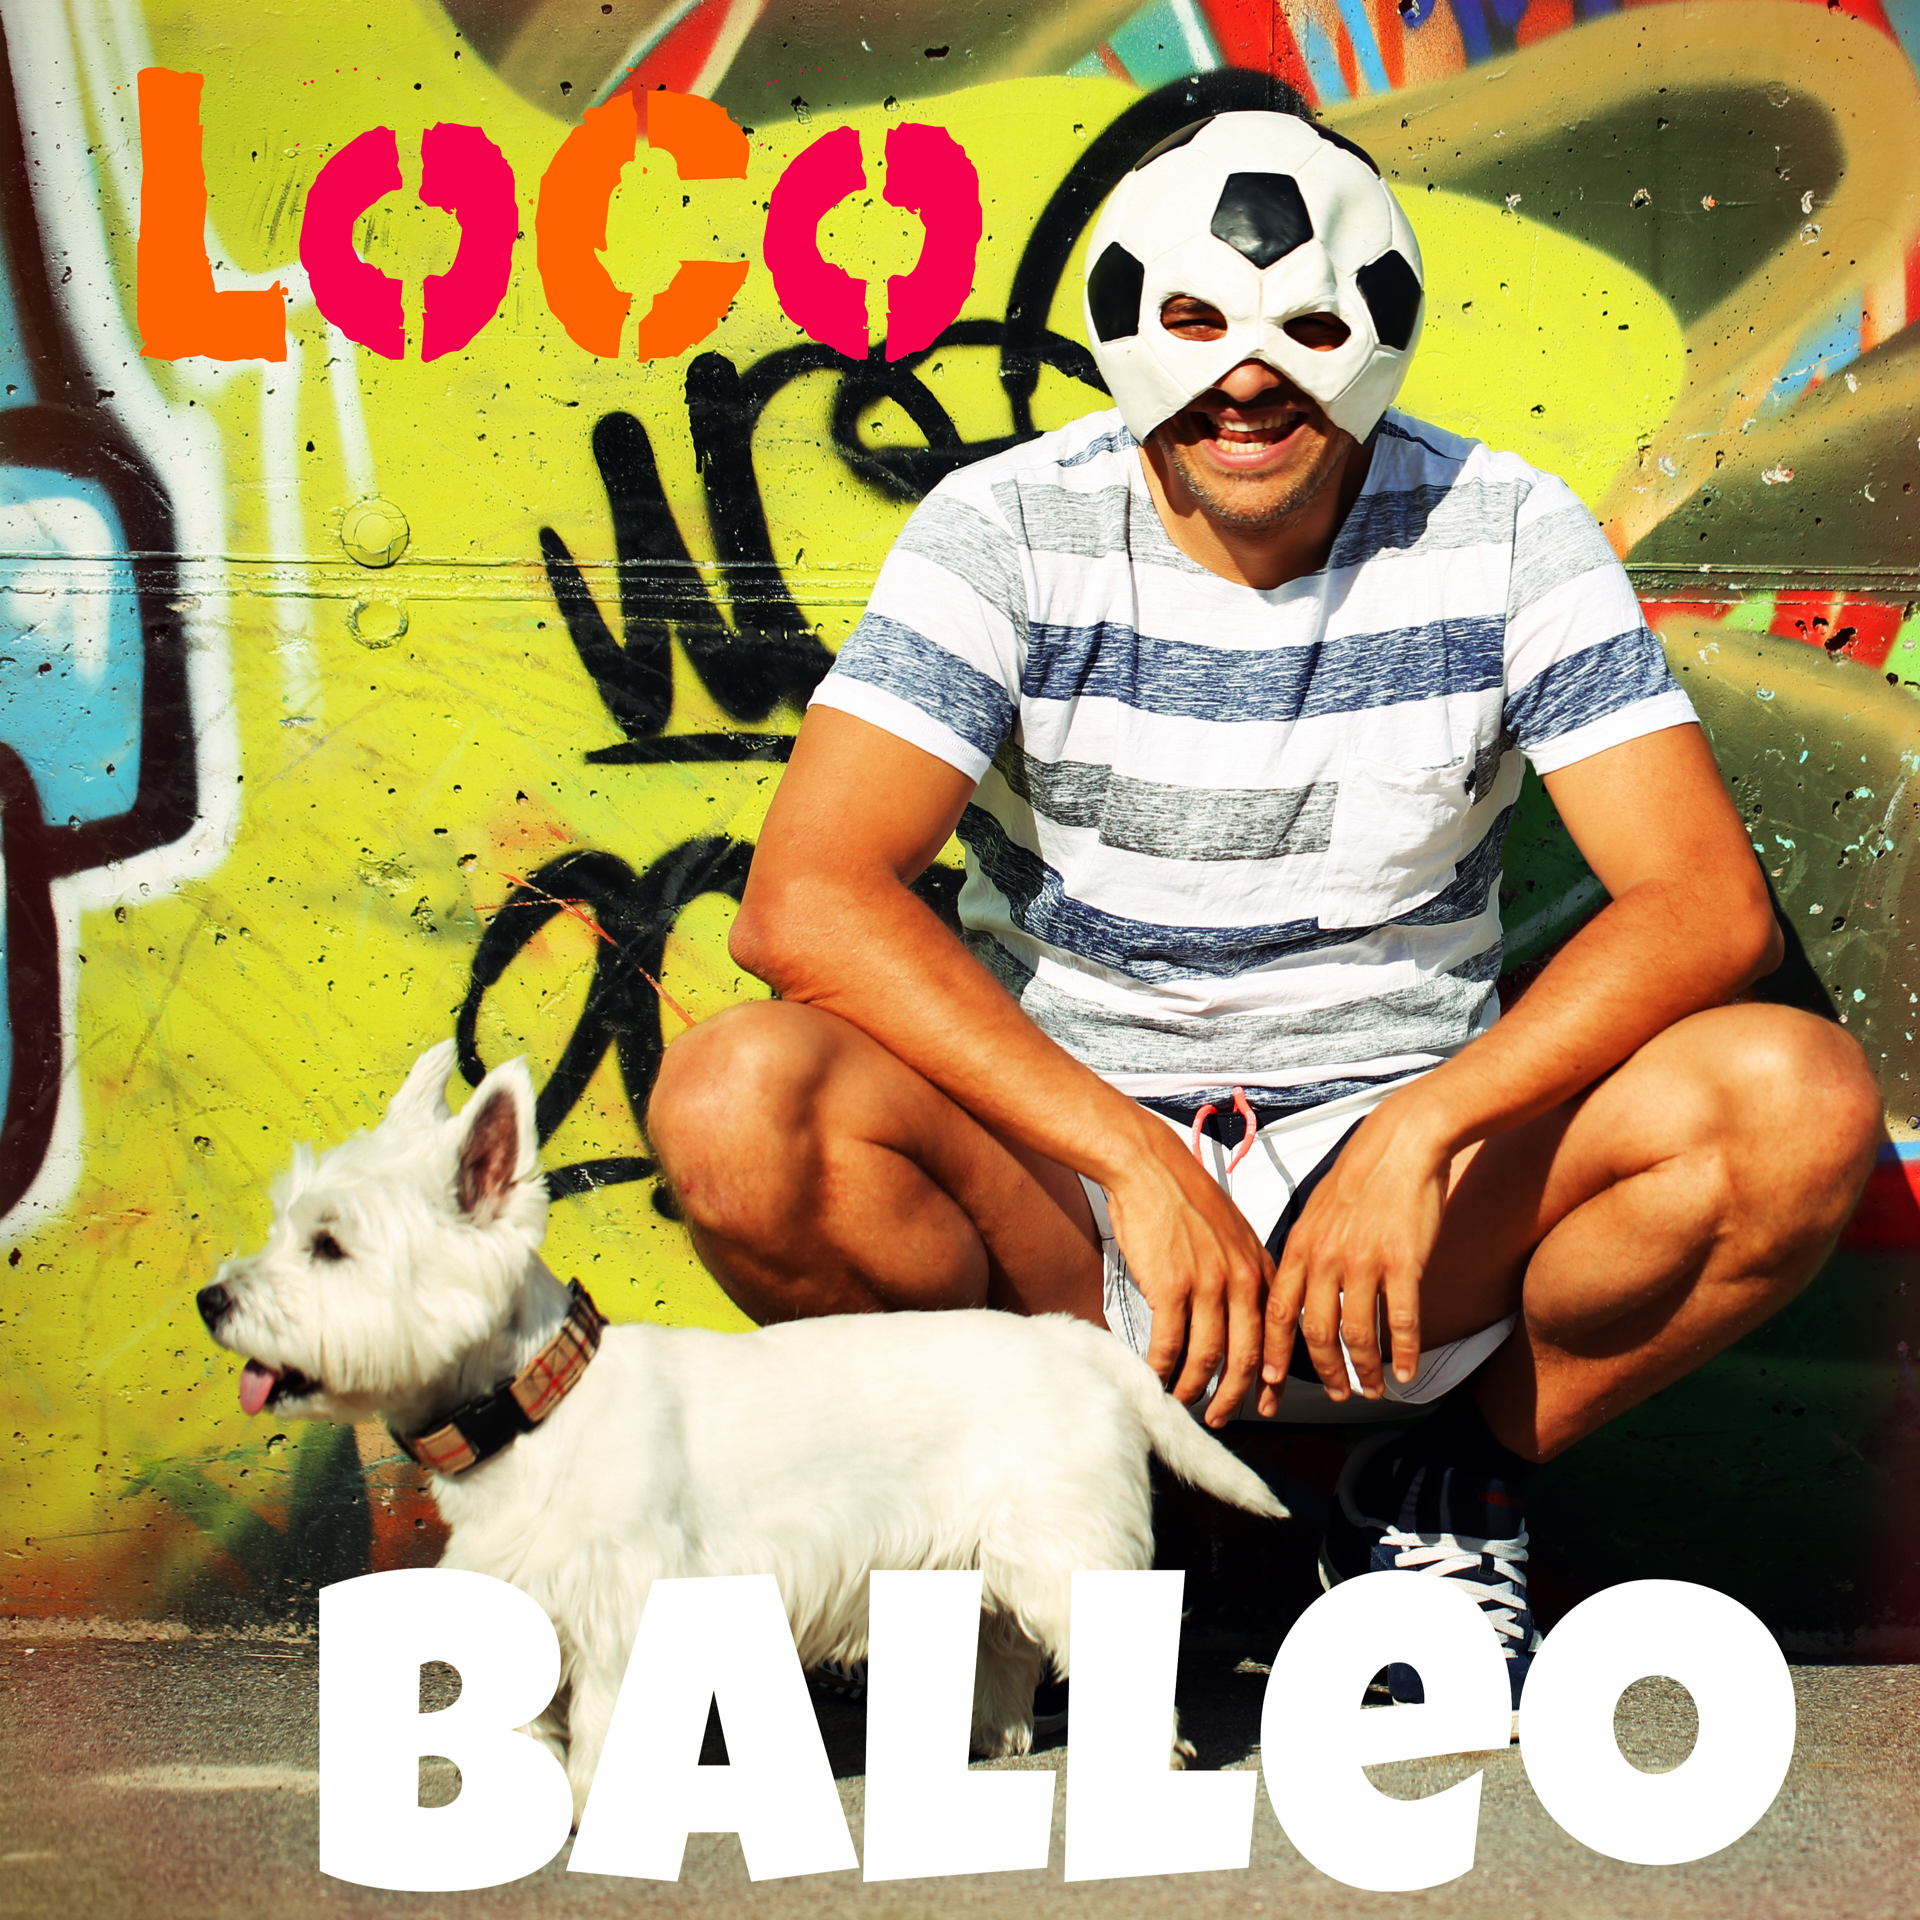 Leo_Aberer_LOCO_BALLEO_COVER.PNG